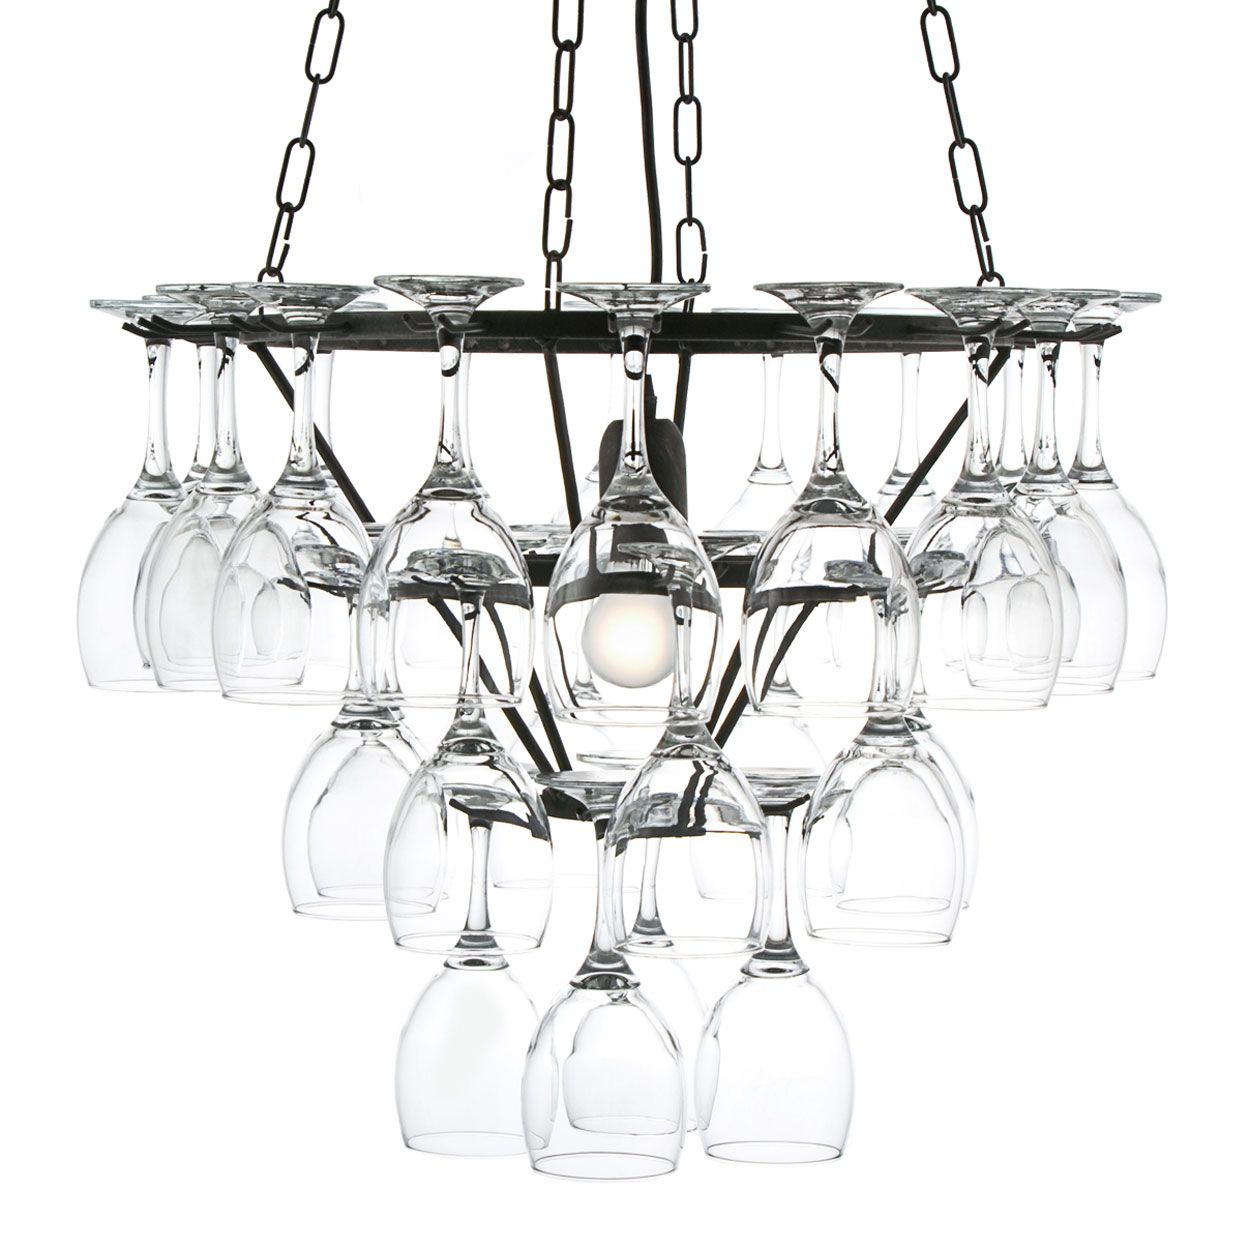 Wine glass chandlier home sweet home pinterest wine glass making moments with friends more pleasurabletecraft black silver 3 tier wine glass chandelier from debenhams arubaitofo Choice Image